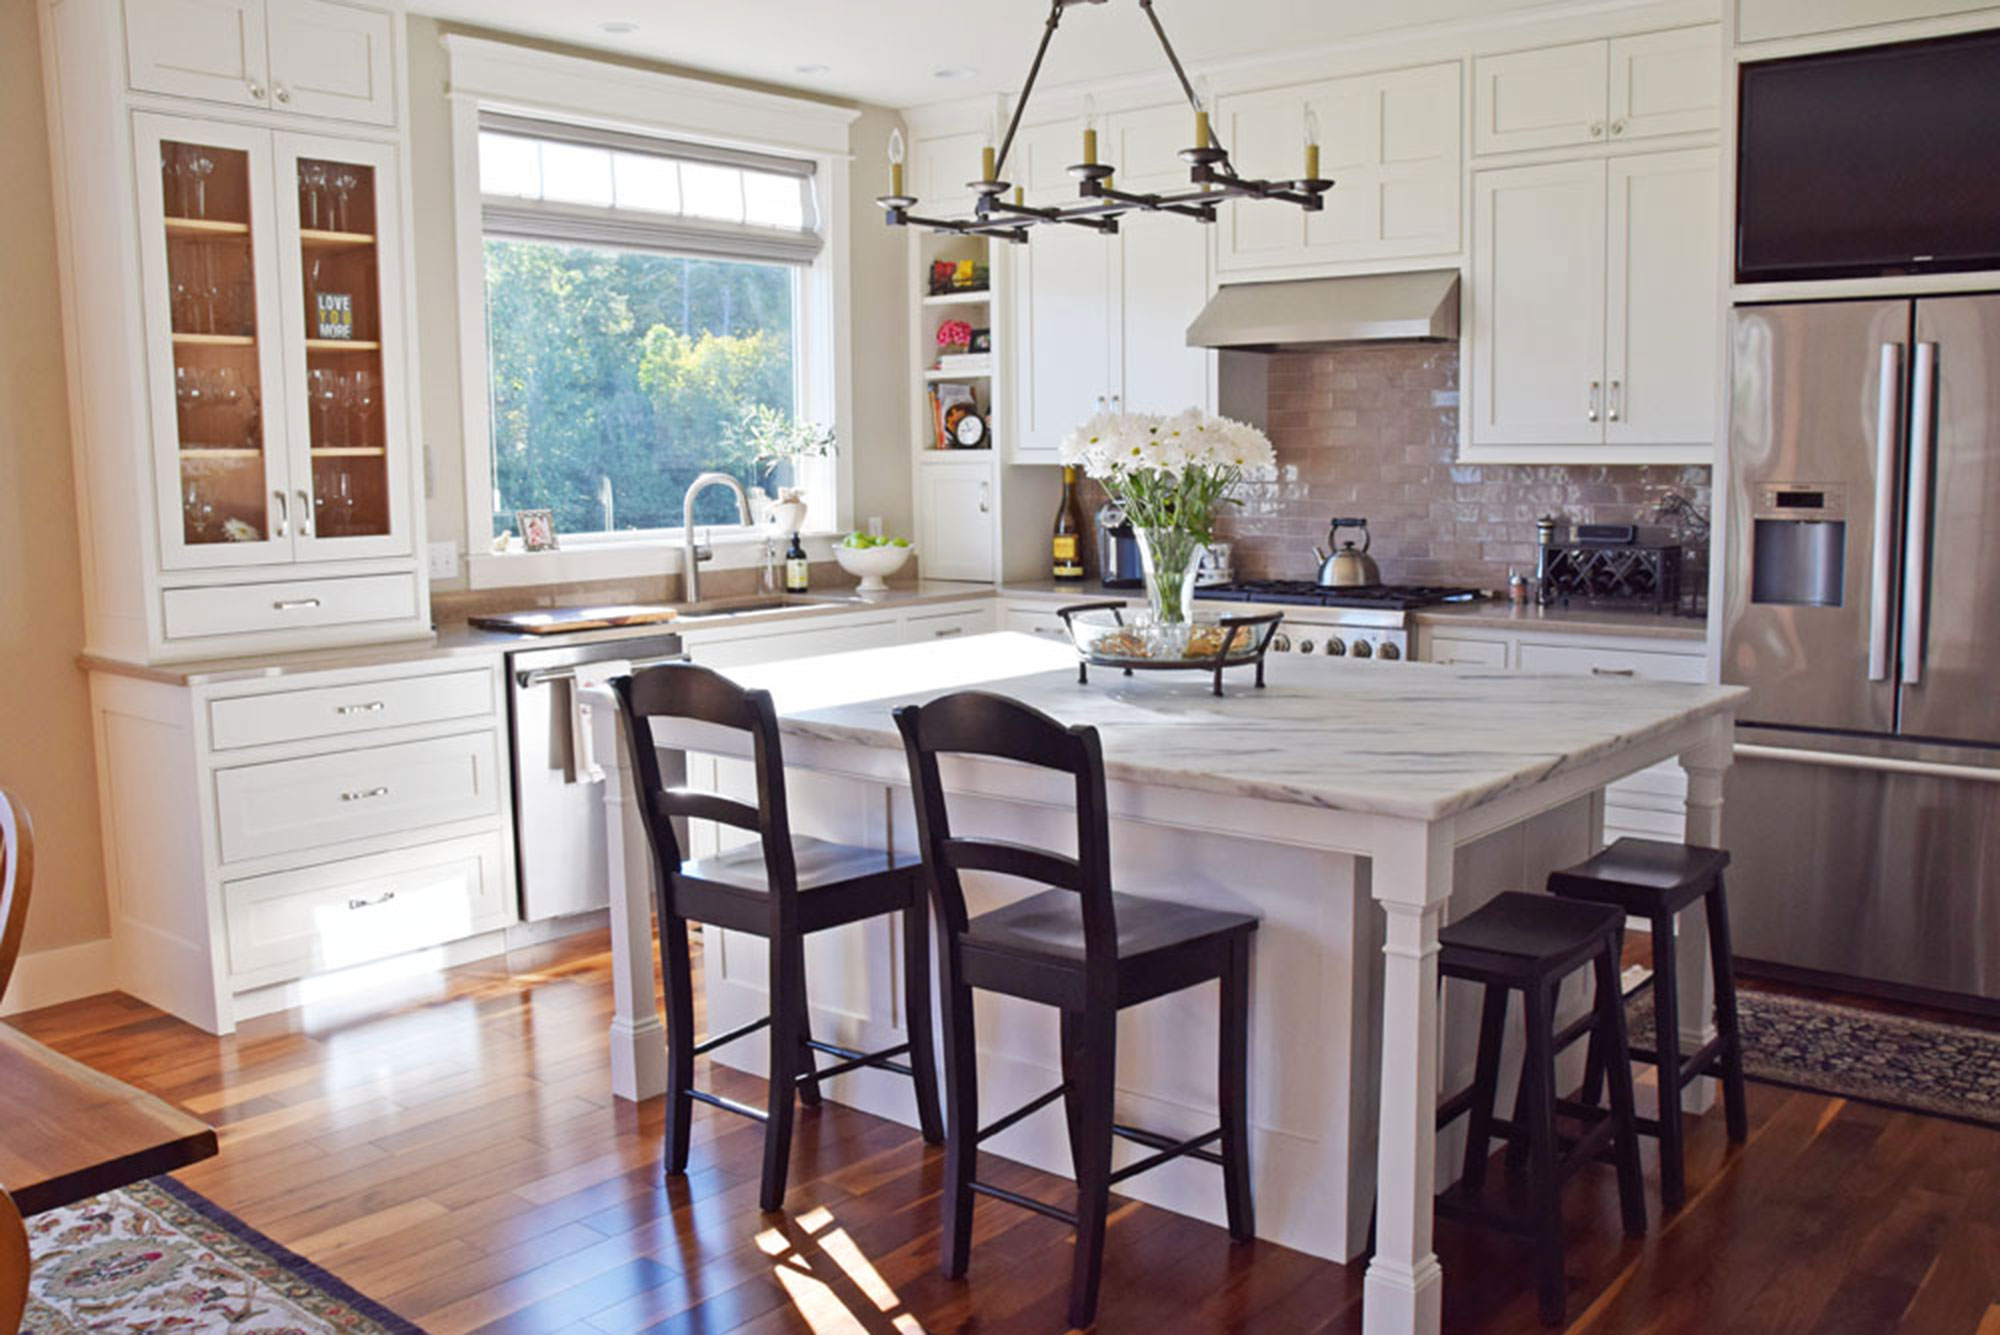 """Bright White Kitchen - Award Winner - Named the """"Best Kitchen"""" by the Home Builders and Remodelers Association, this extremely beautiful and crisply clean white kitchen took home the gold! More Pictures"""